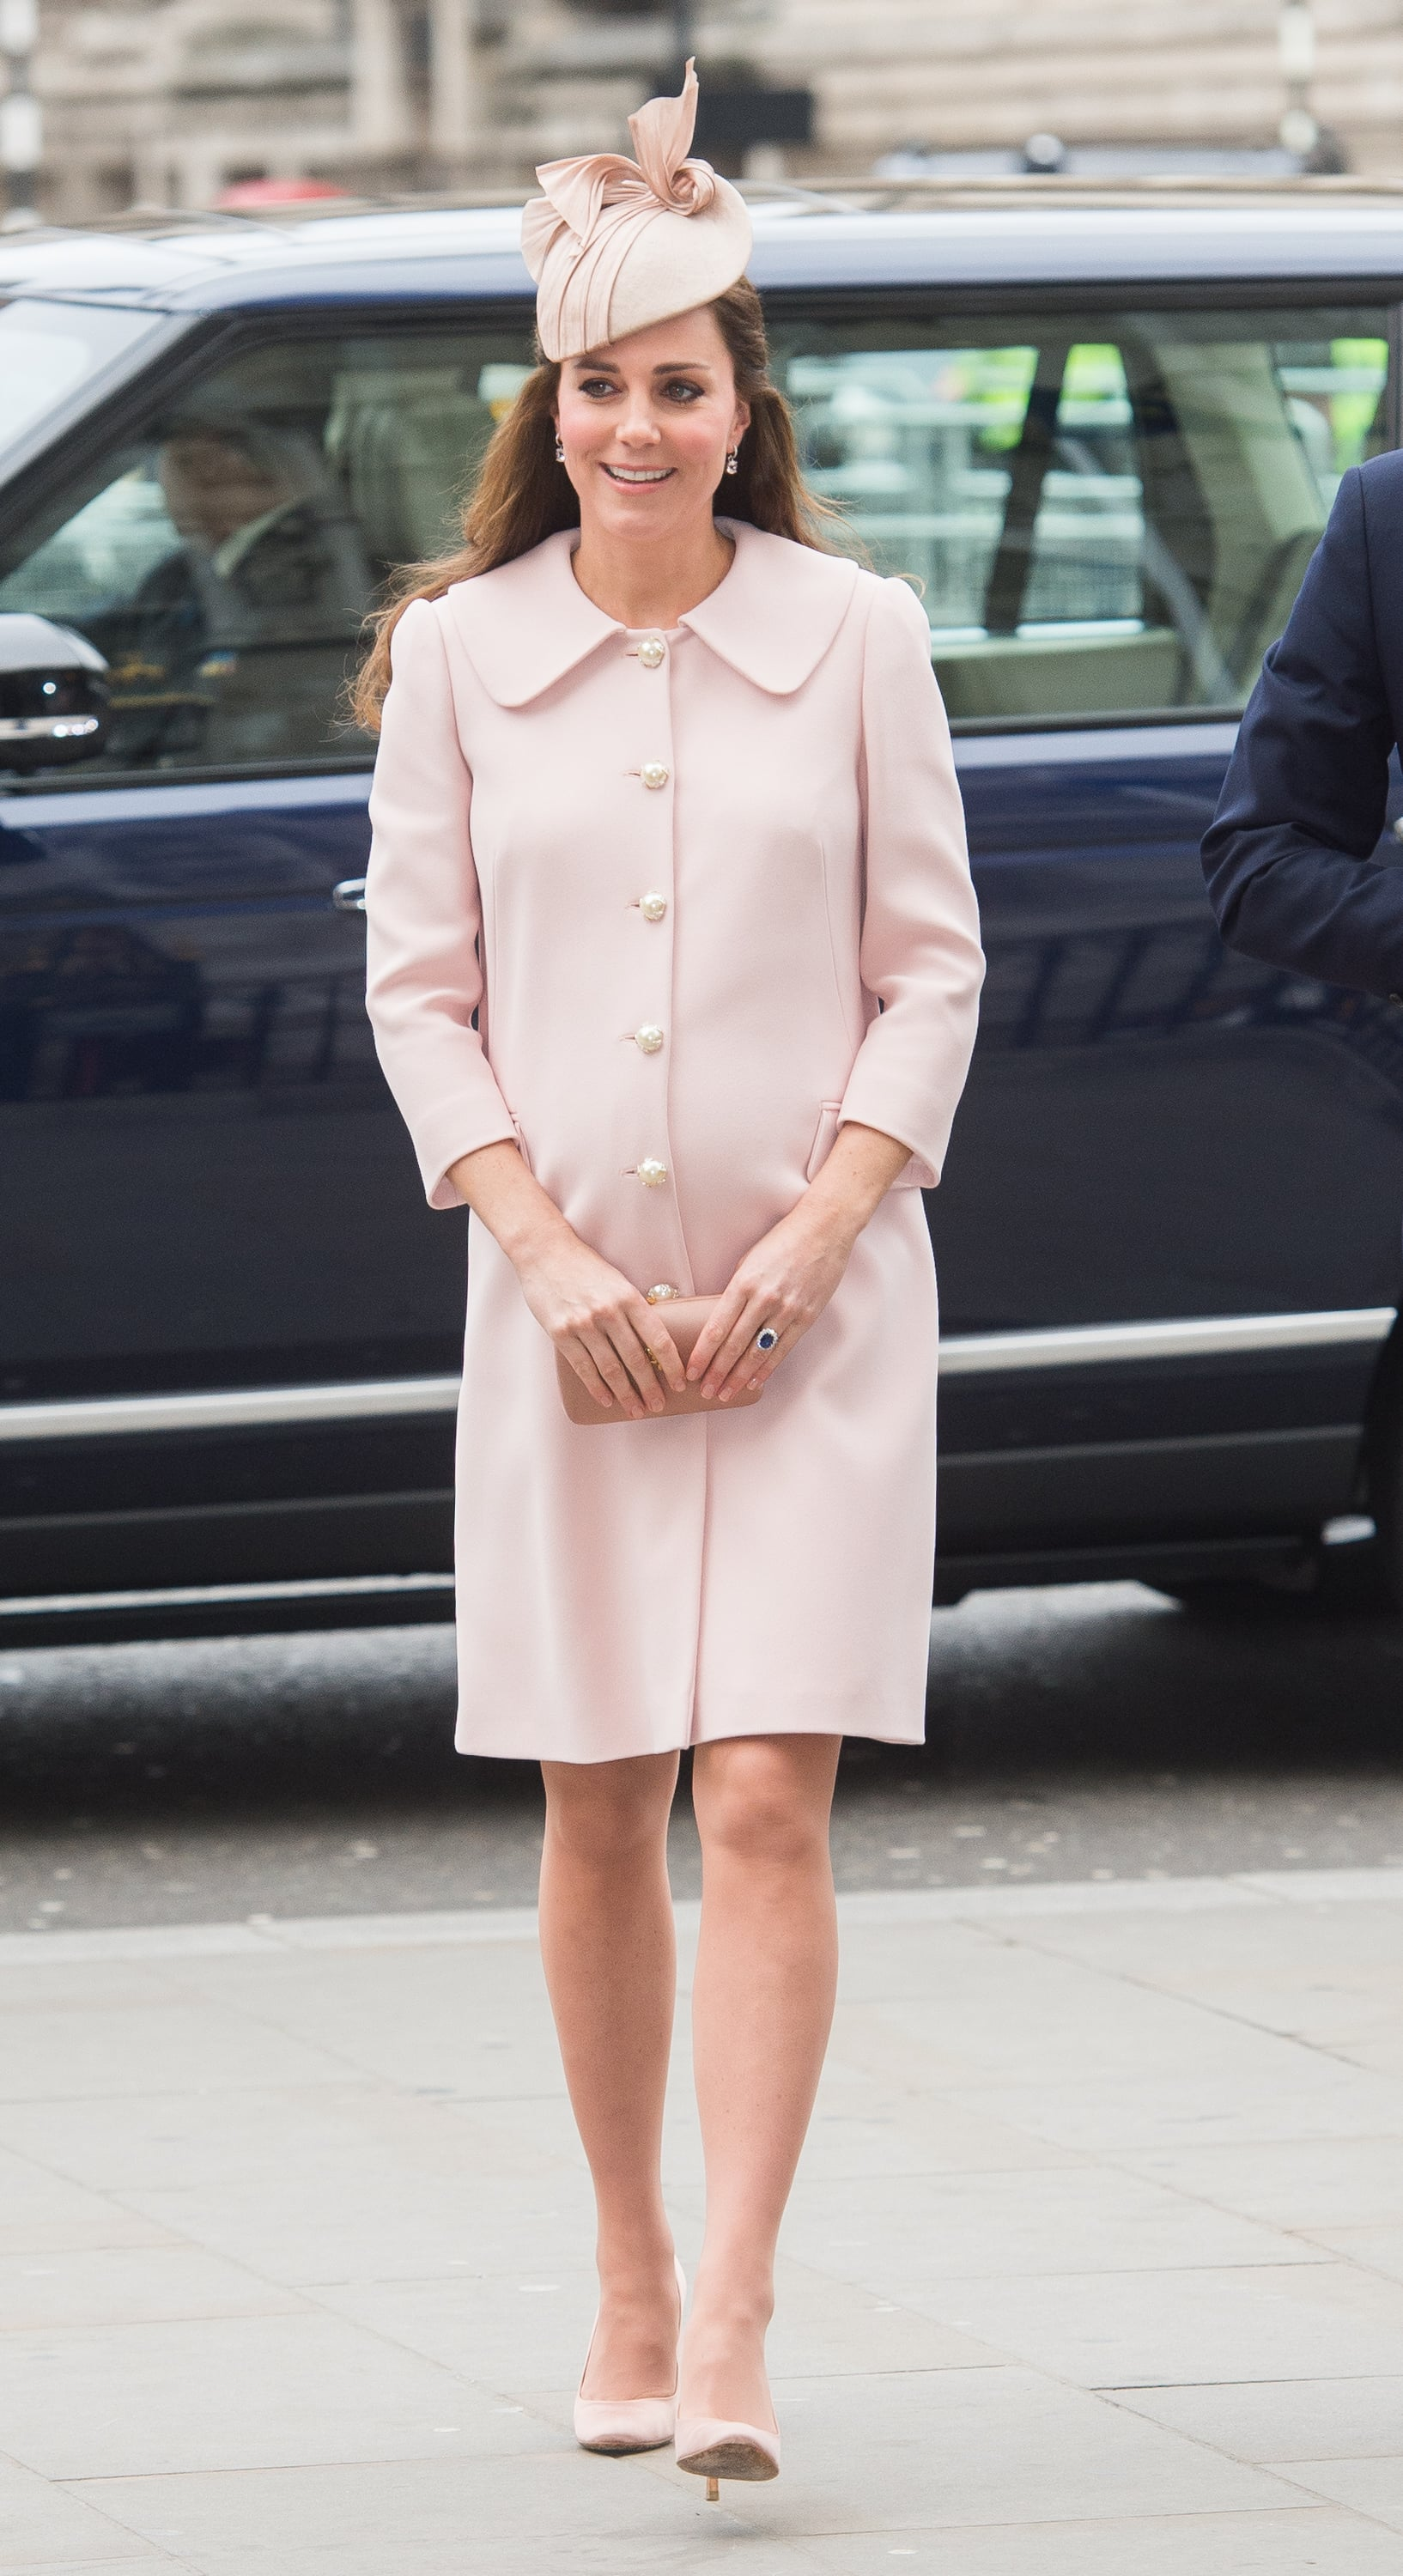 Kate Middleton Style It 39 S A Girl Celebrate The New Princess With Kate Middleton 39 S Most